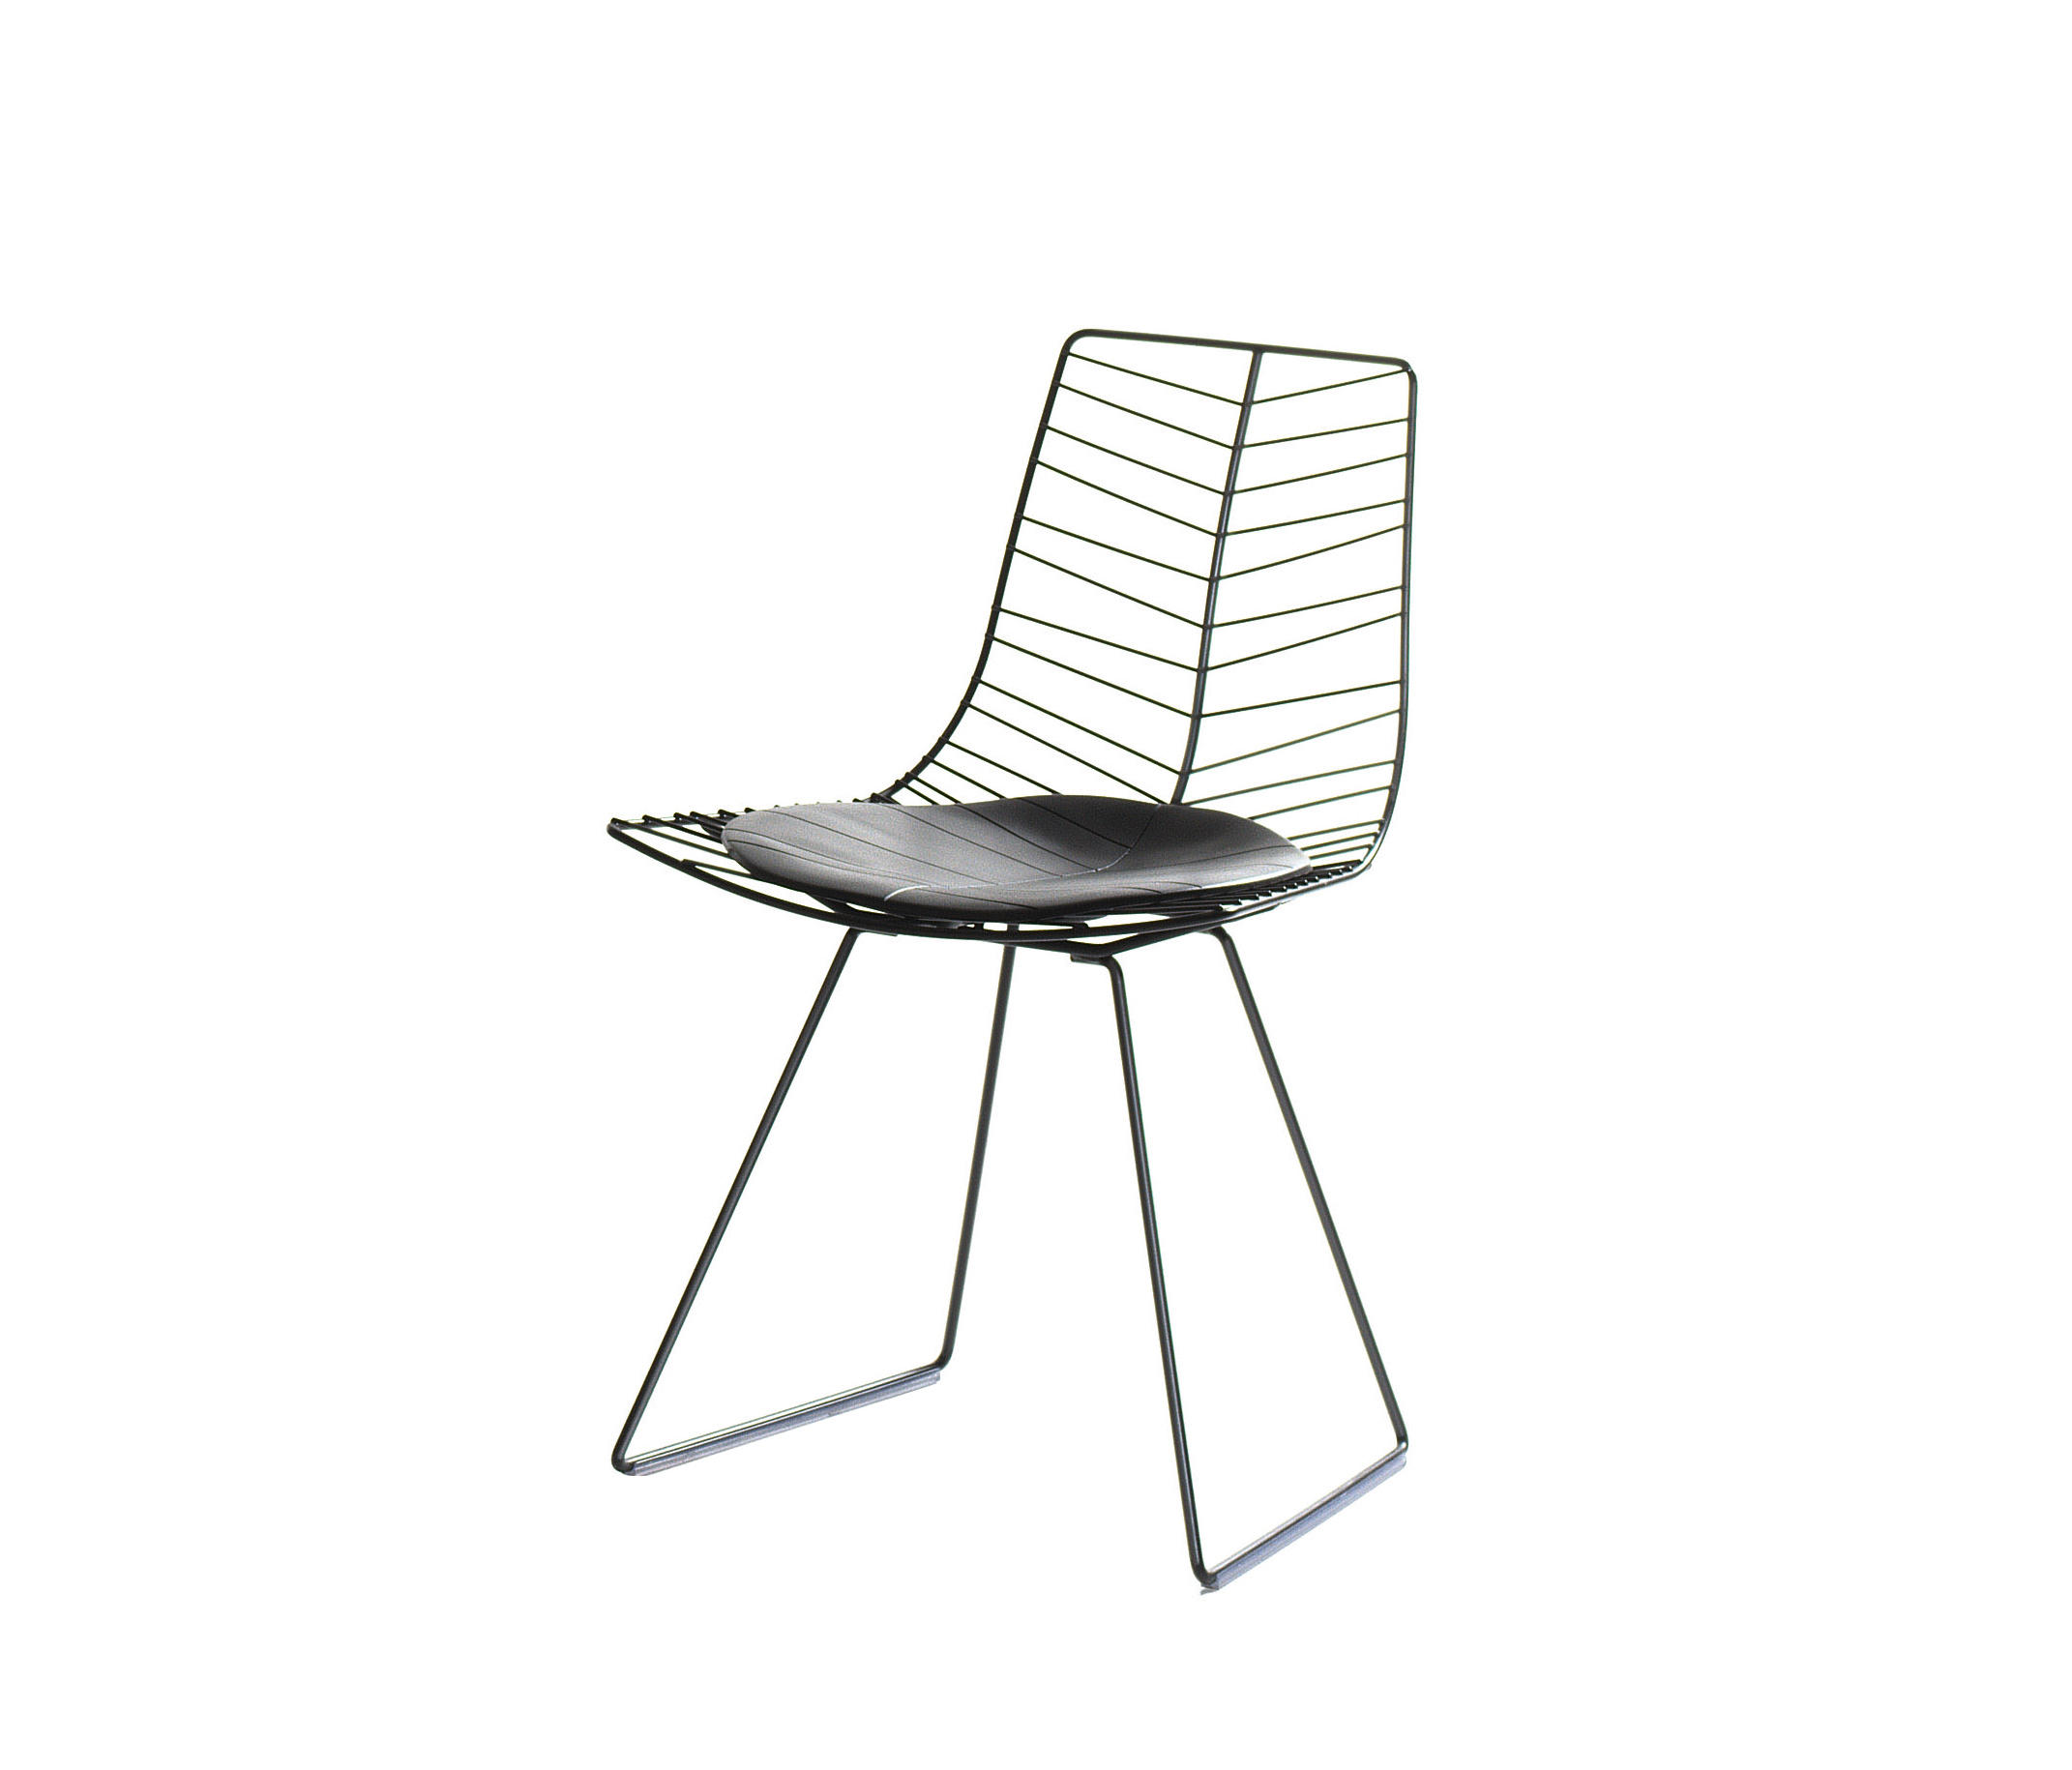 LEAF 1801 Multipurpose chairs from Arper